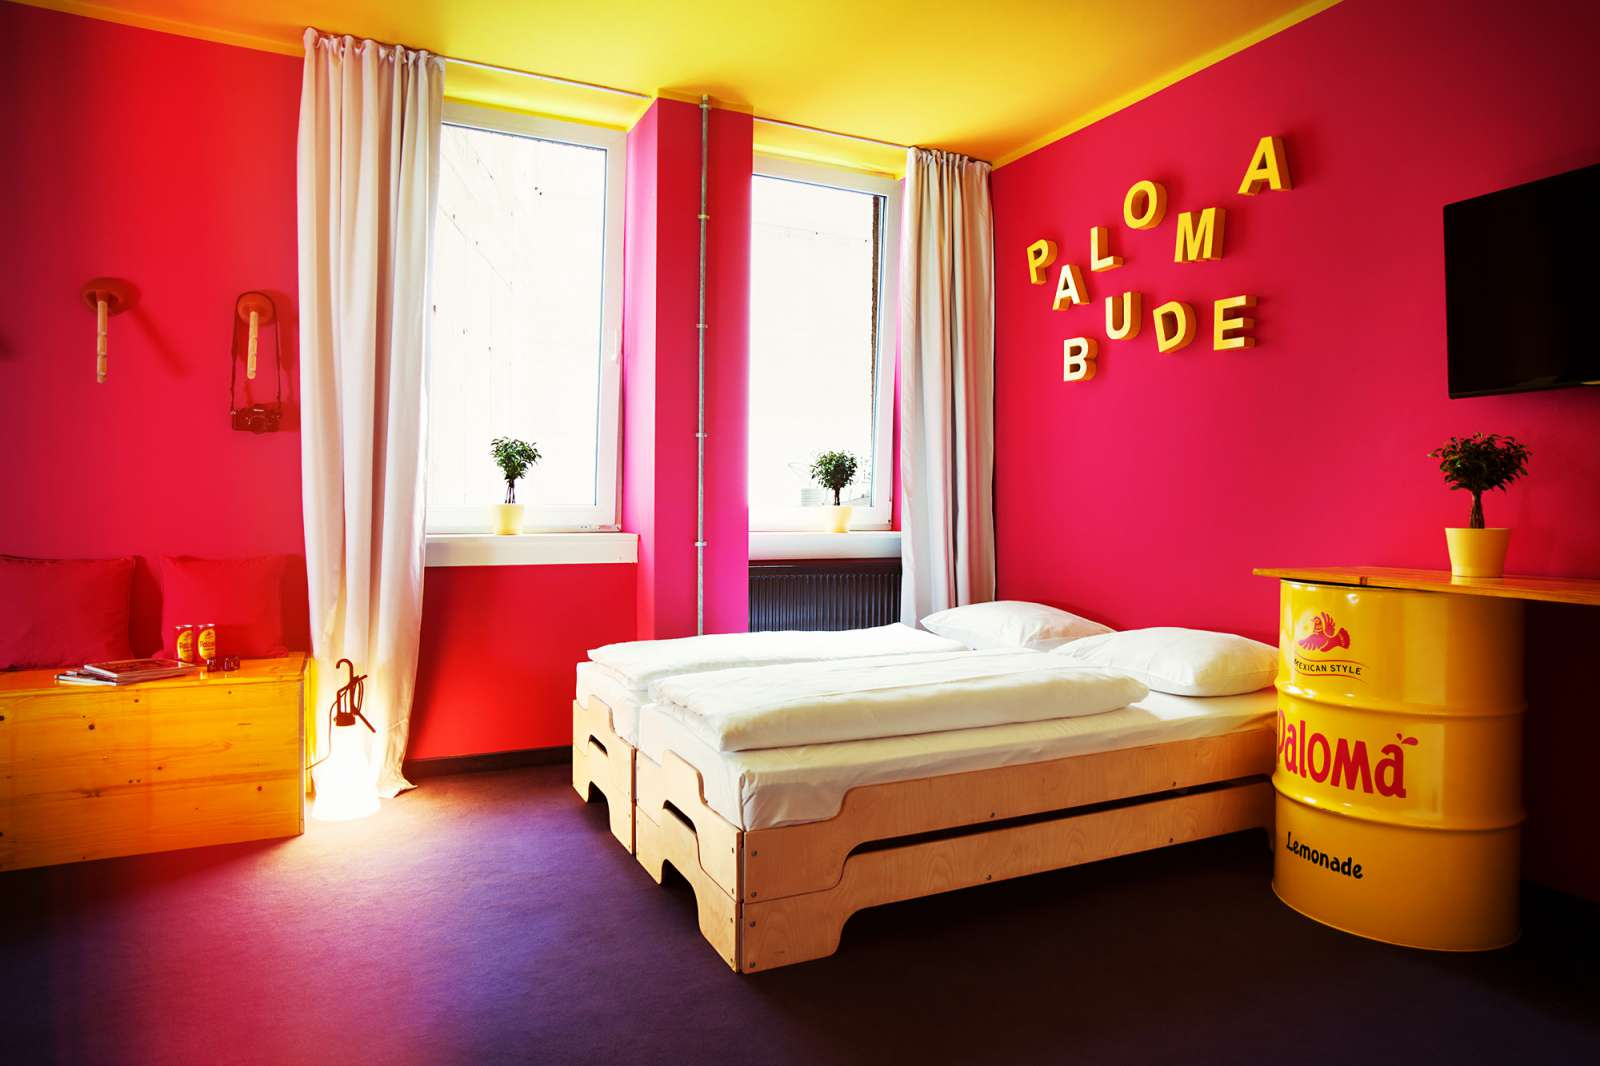 stapelliege palomabude in der superbude st georg hotel hostel hamburg superbude blog. Black Bedroom Furniture Sets. Home Design Ideas